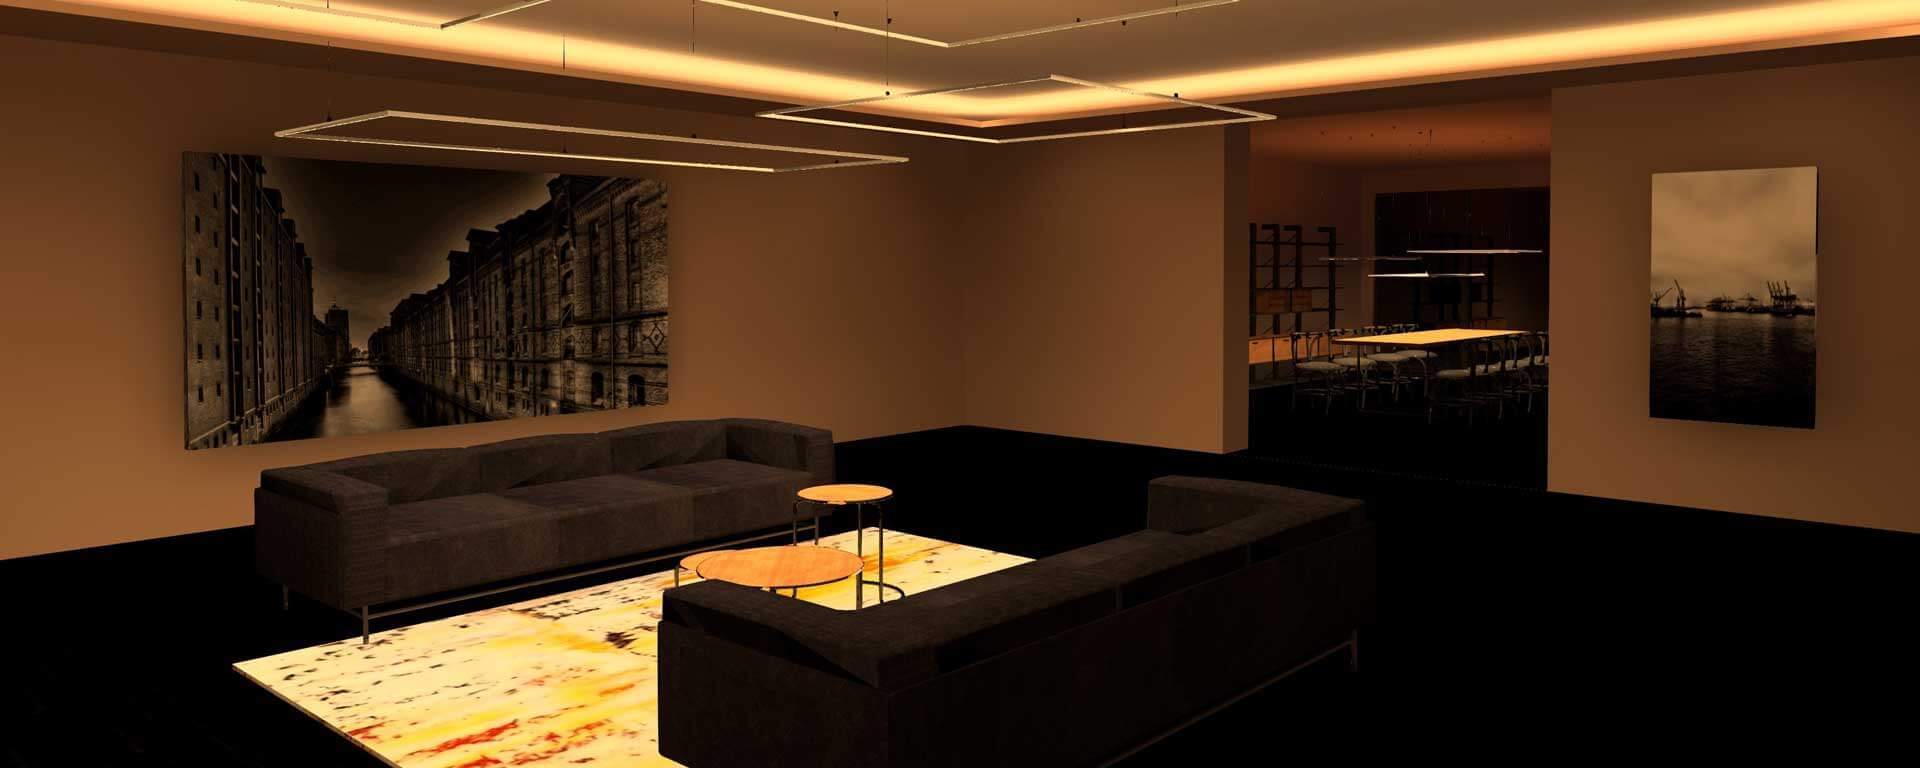 led beleuchtung led streifen hier g nstig kaufen. Black Bedroom Furniture Sets. Home Design Ideas